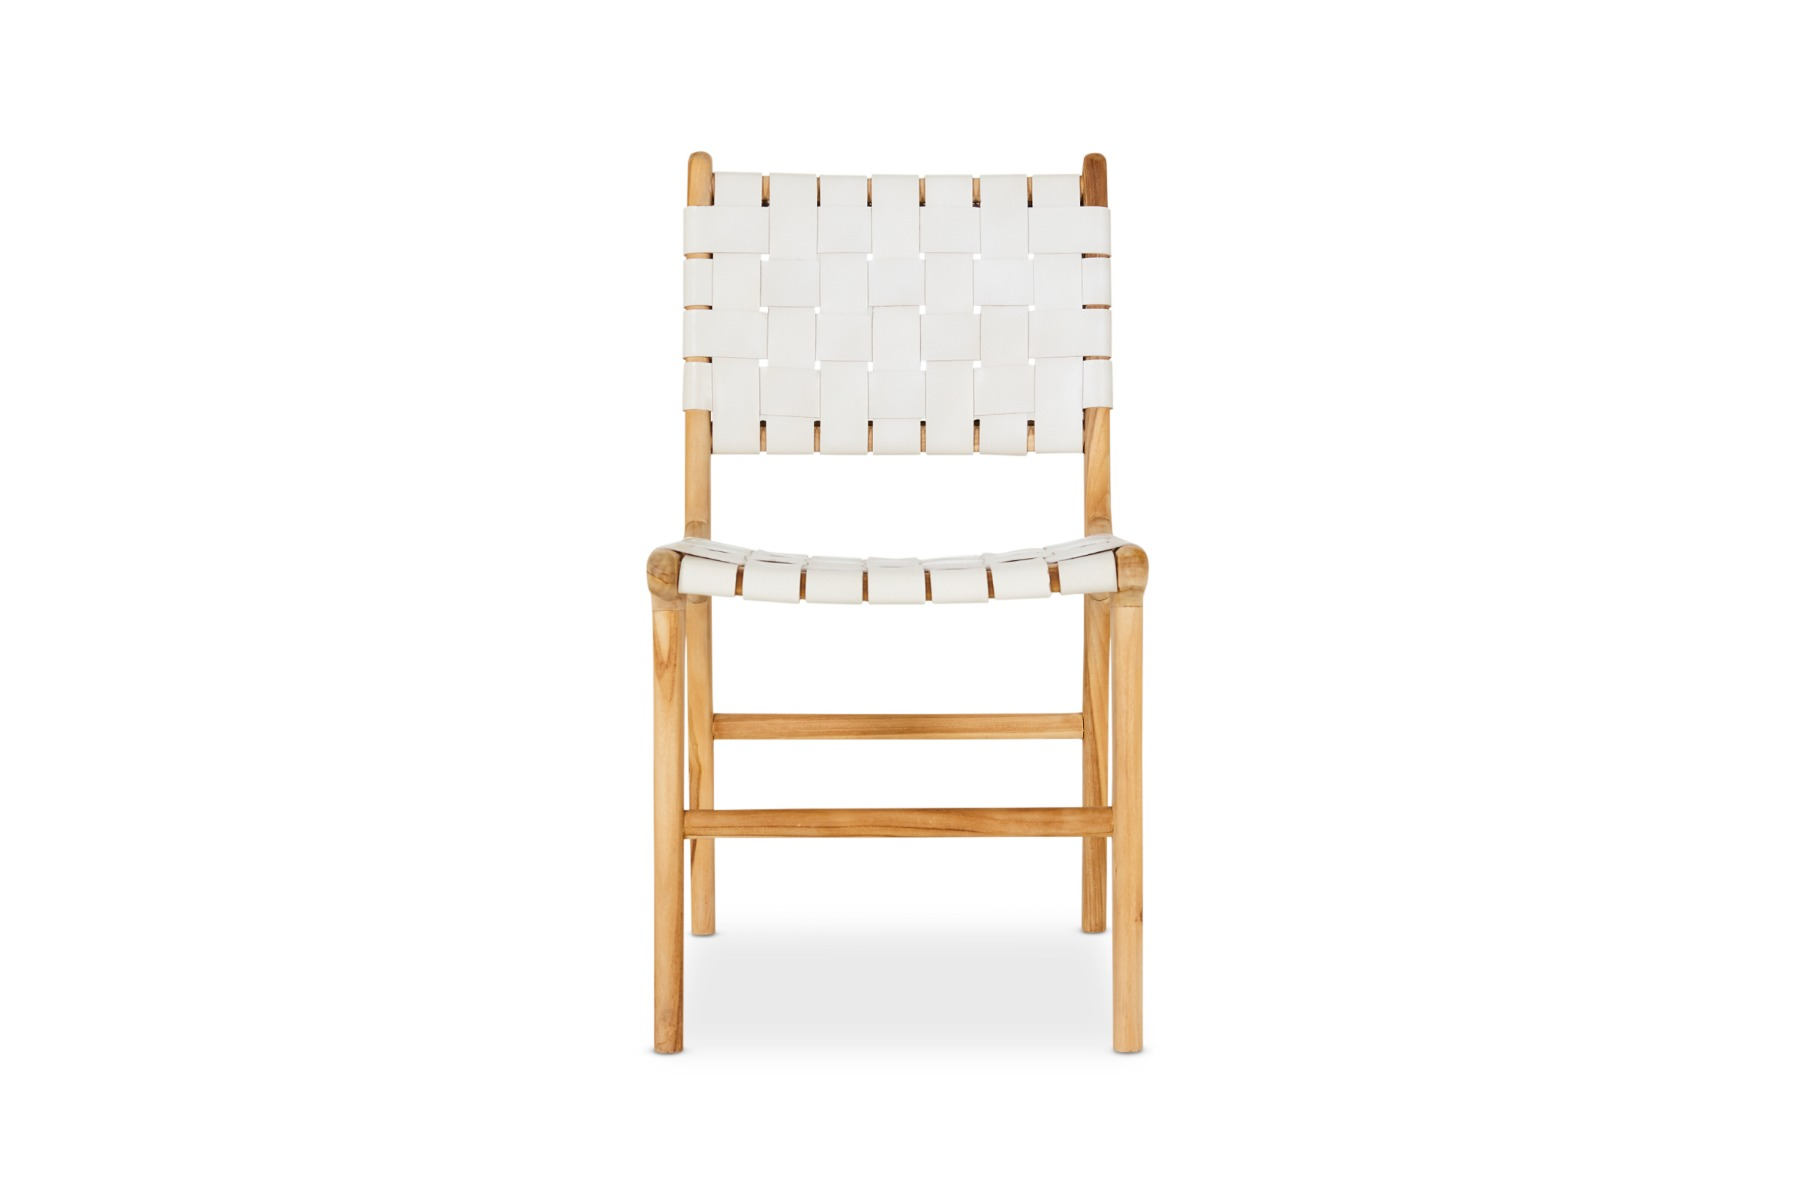 Cuba Woven Coastal Dining Chair White by Lounge Lovers by Lounge Lovers, a Dining Chairs for sale on Style Sourcebook